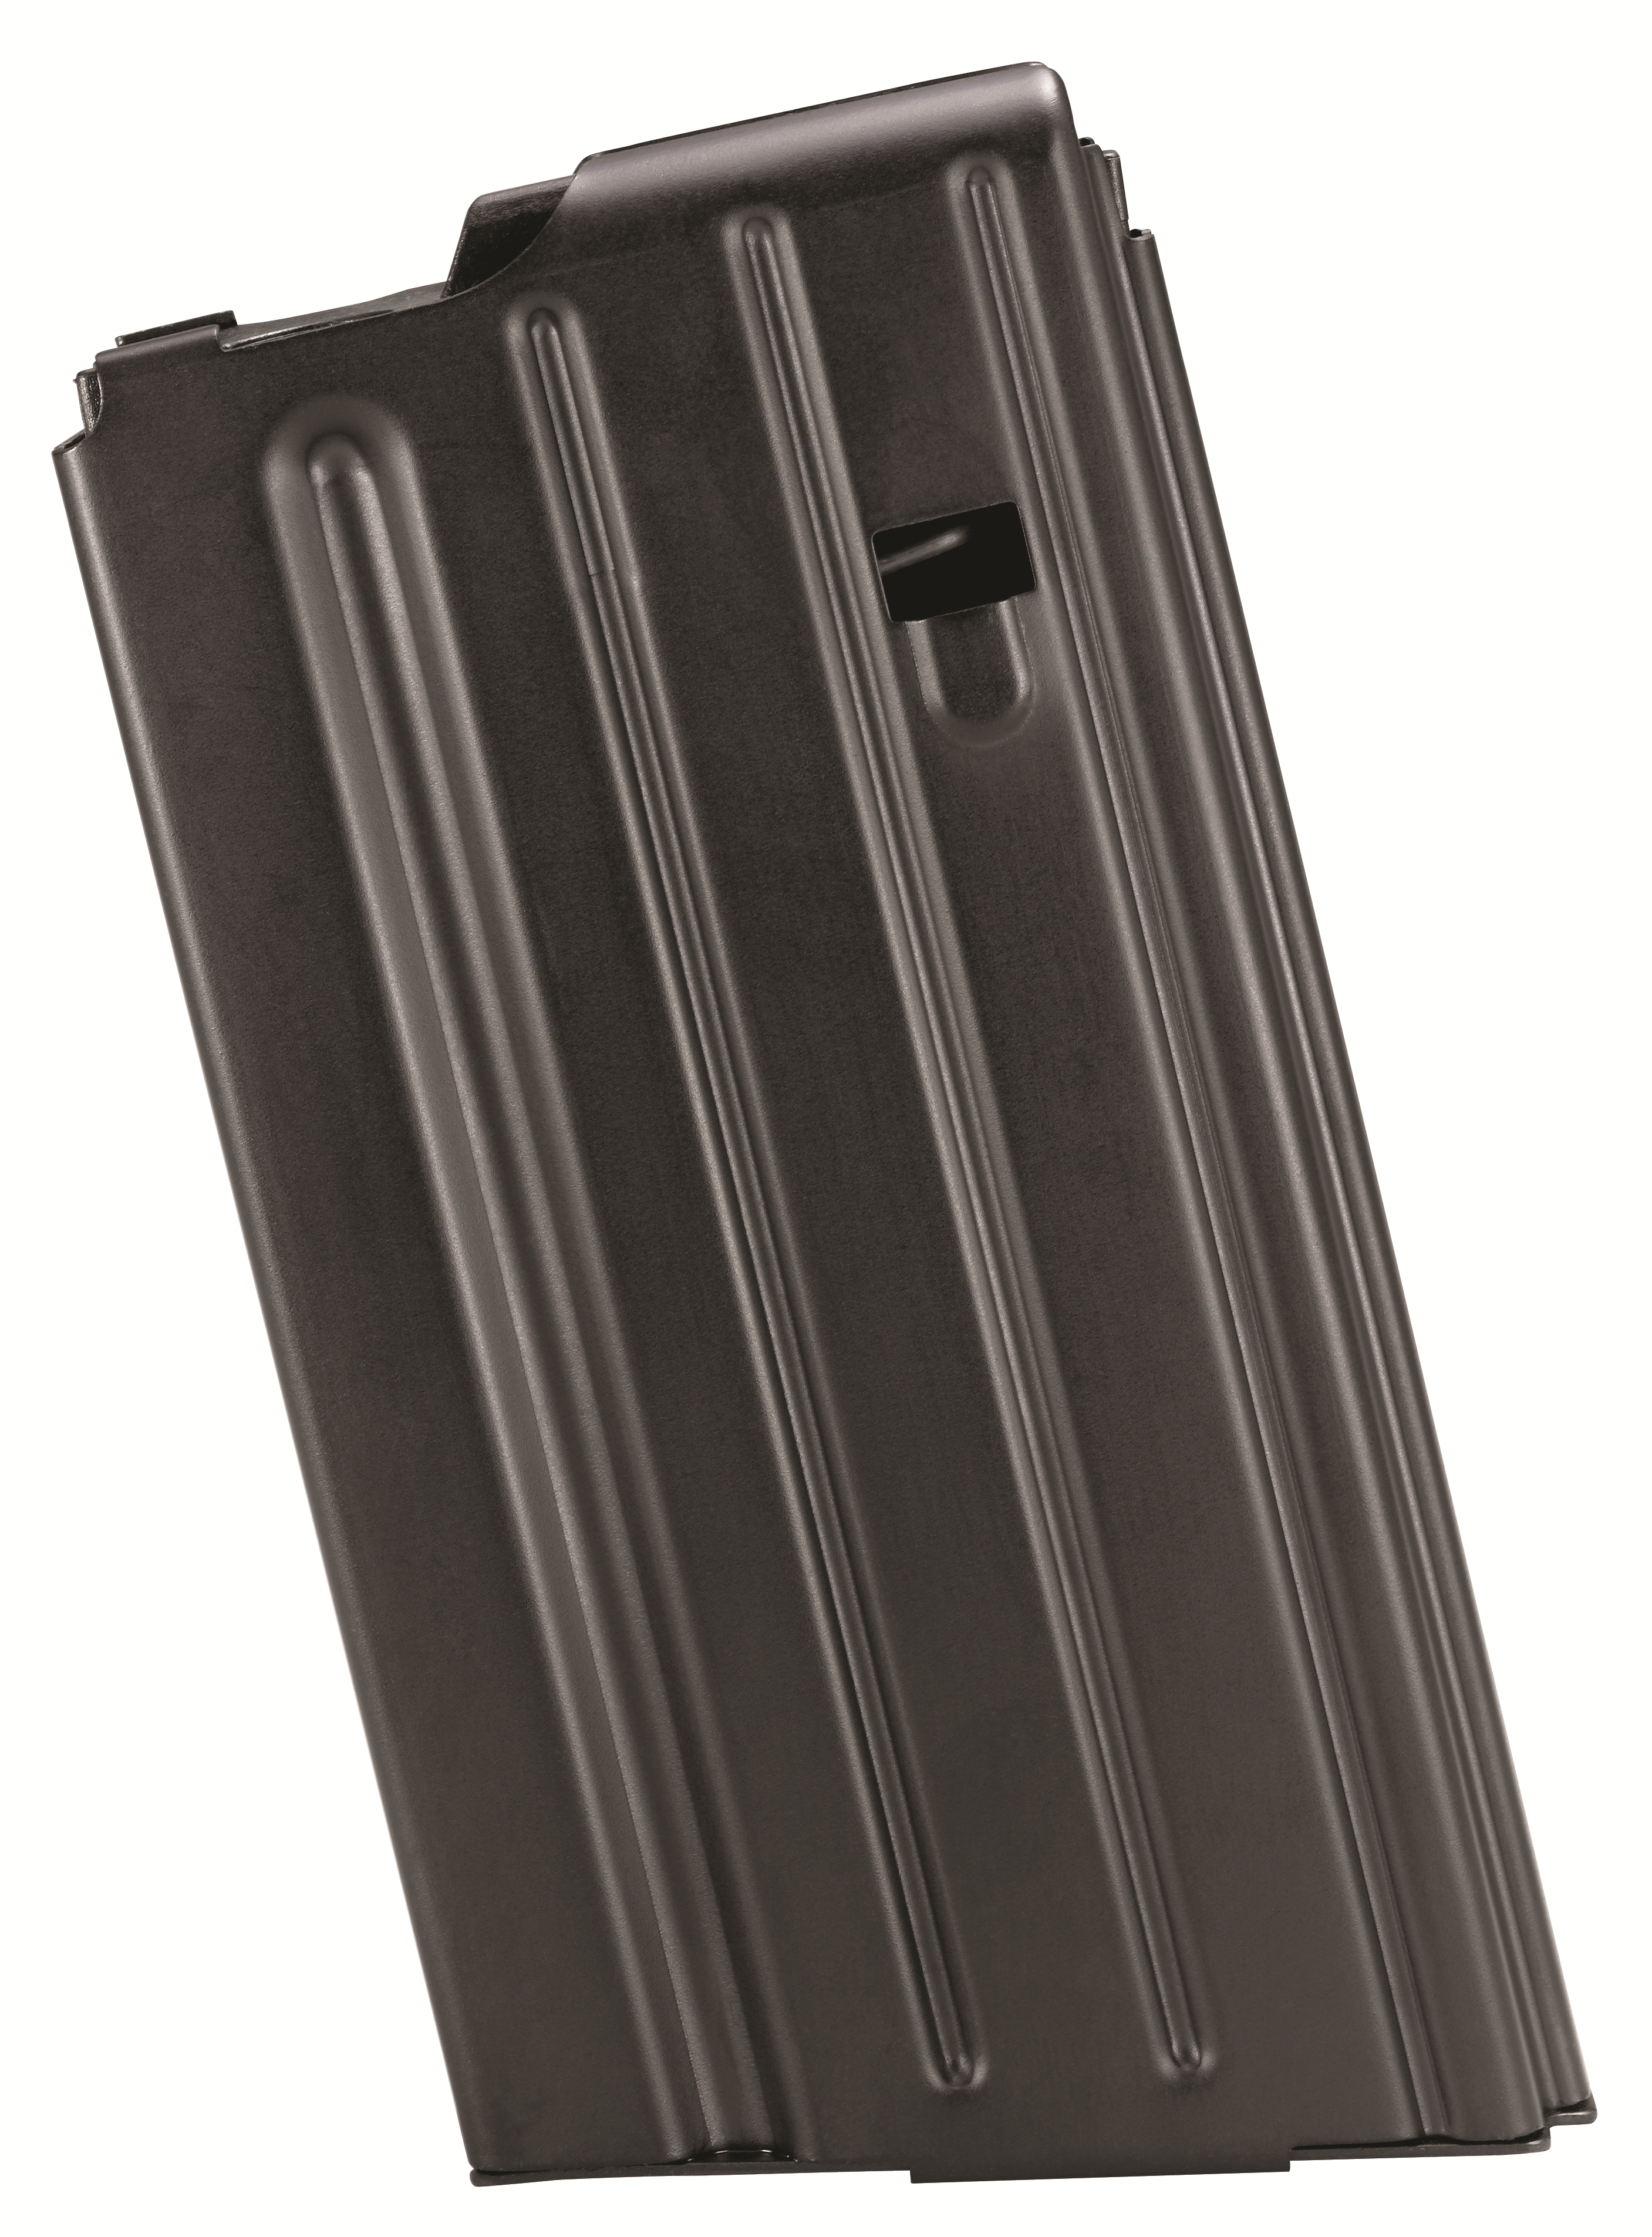 C Products Defense - DURAMAG AR10 .308/6.5 Ceedmoor SR25 20rd Magazine